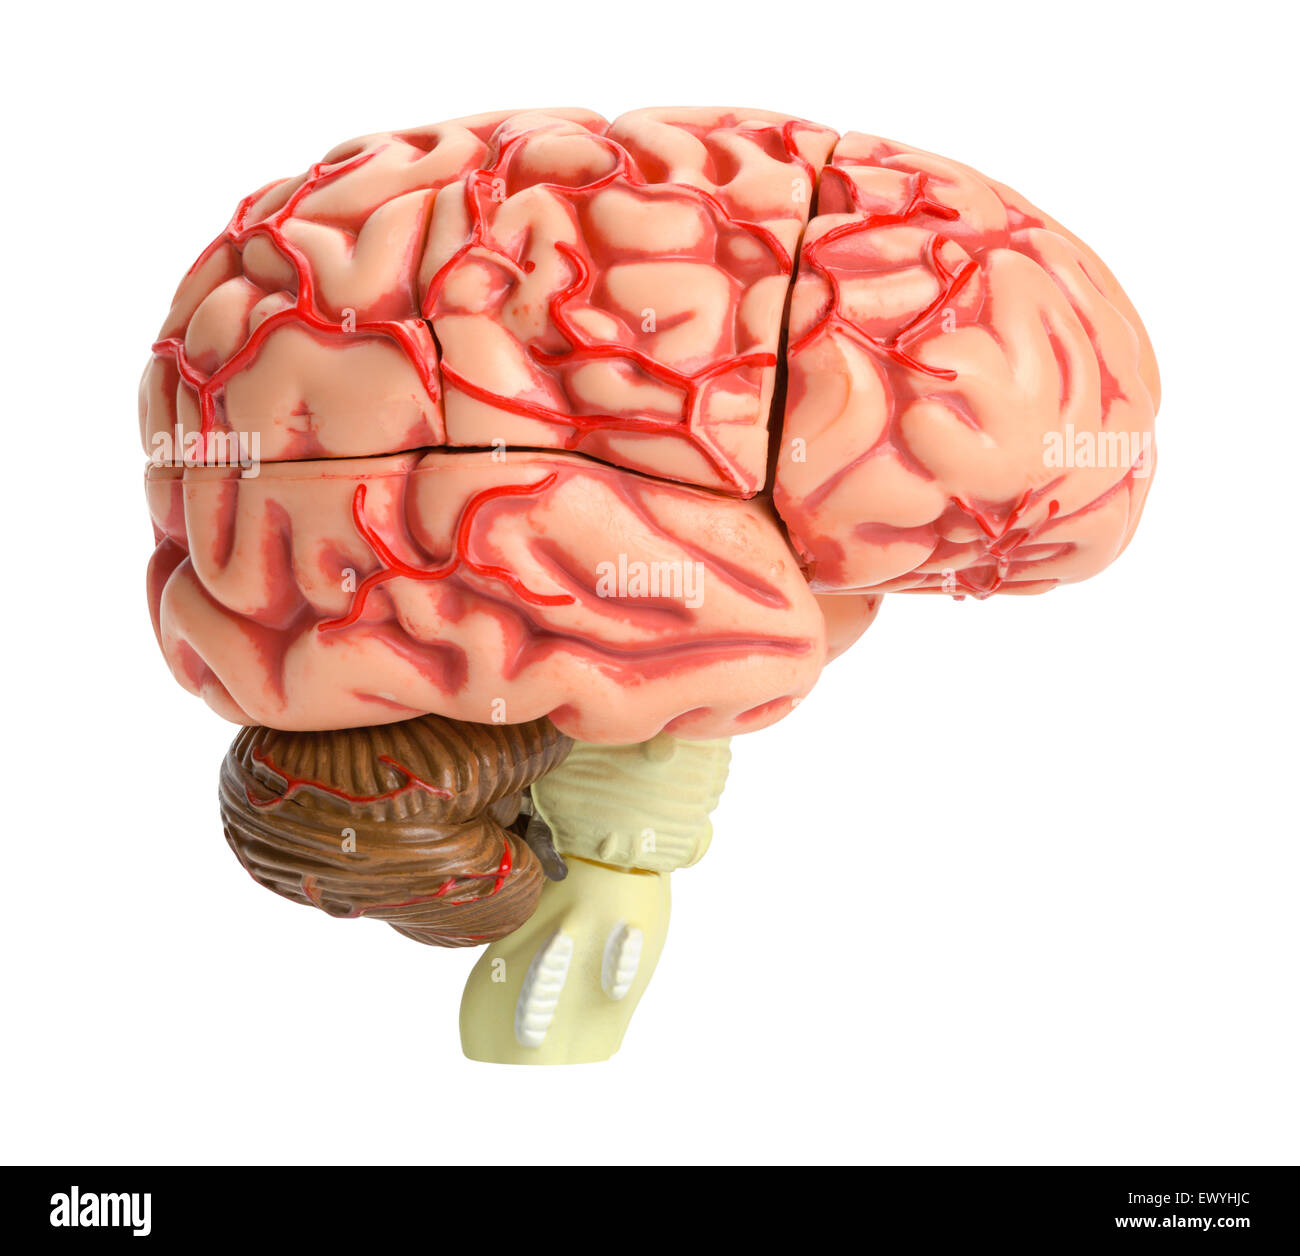 Human Brain Model Side View Isolated on White Background. - Stock Image